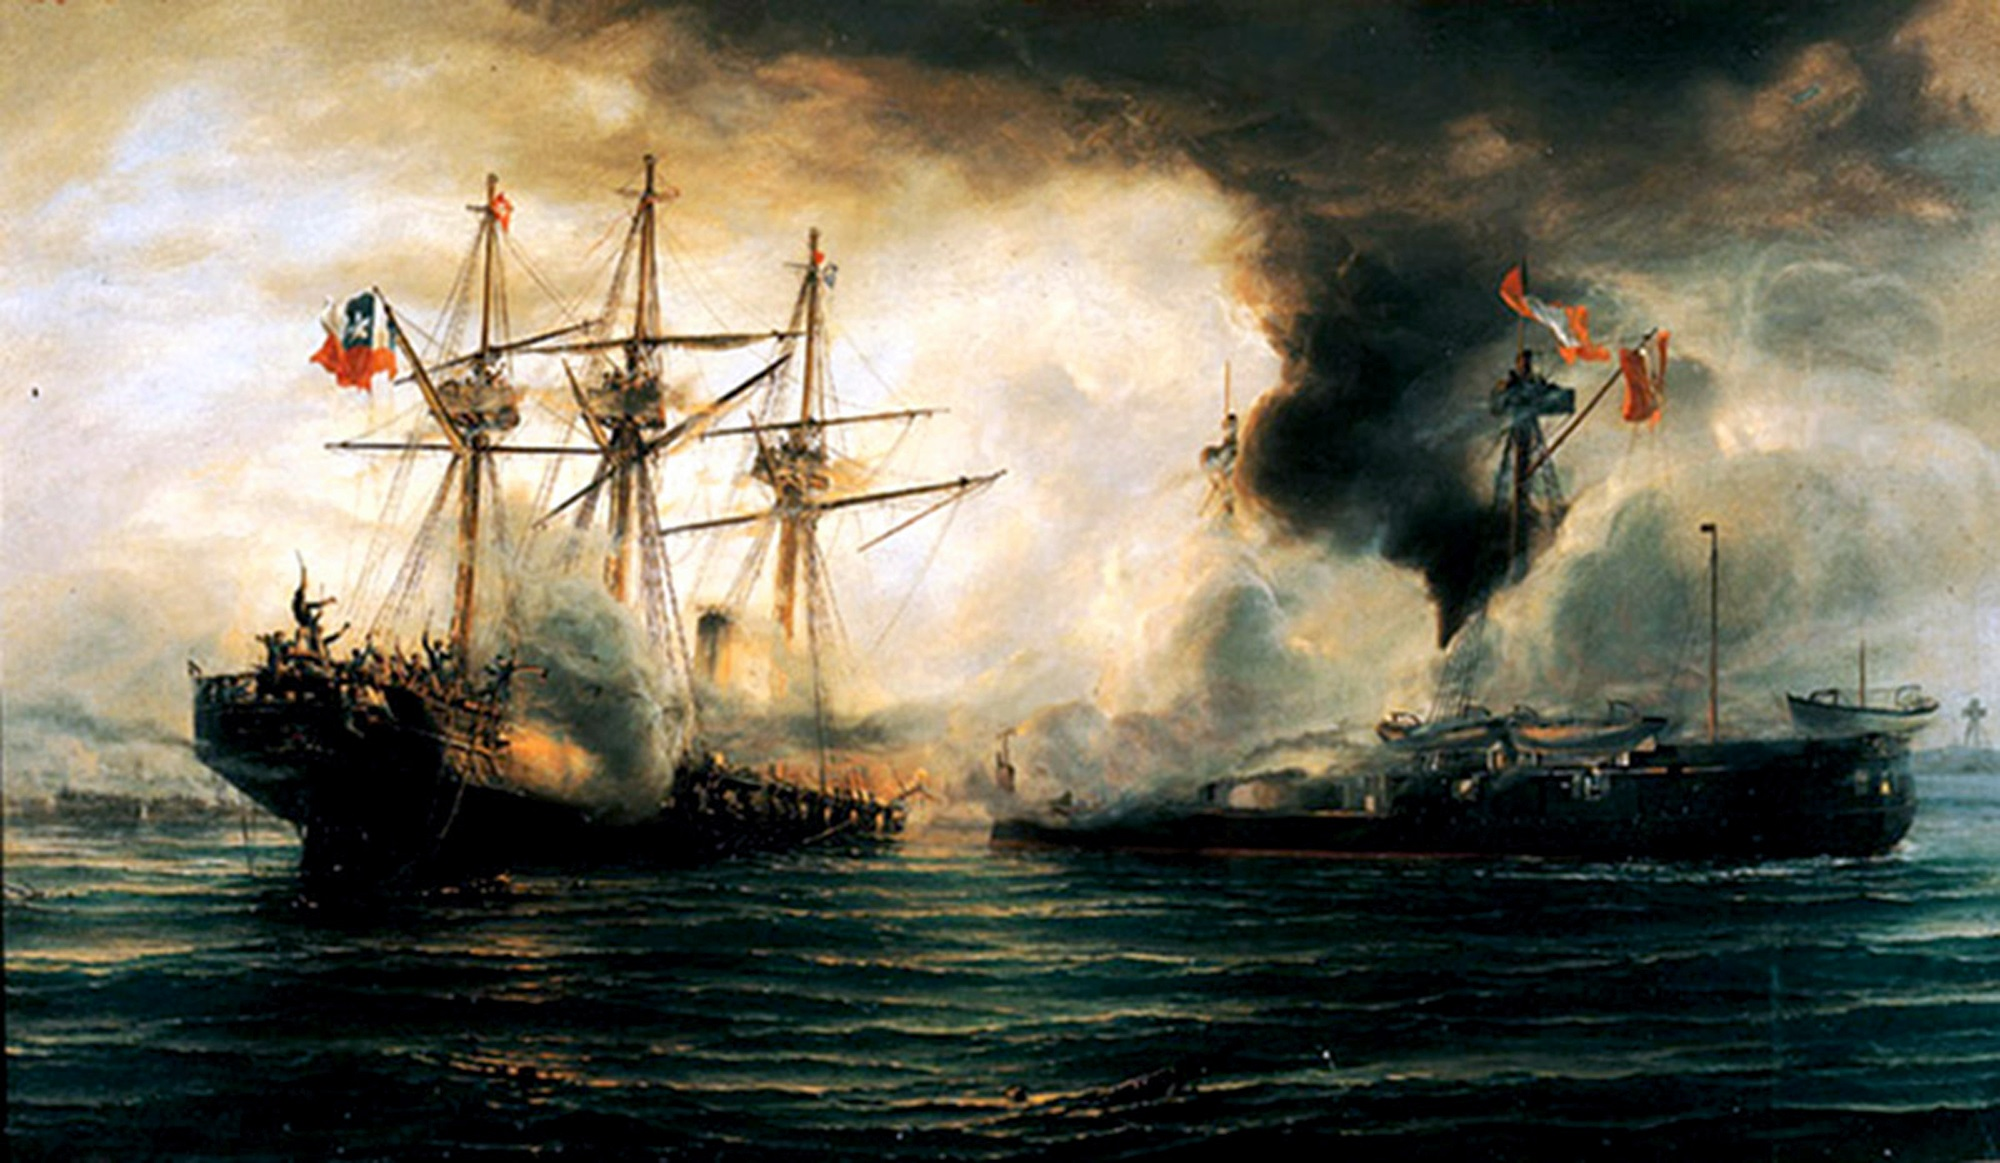 Sinking_of_the_Esmeralda_during_the_battle_of_Iquique